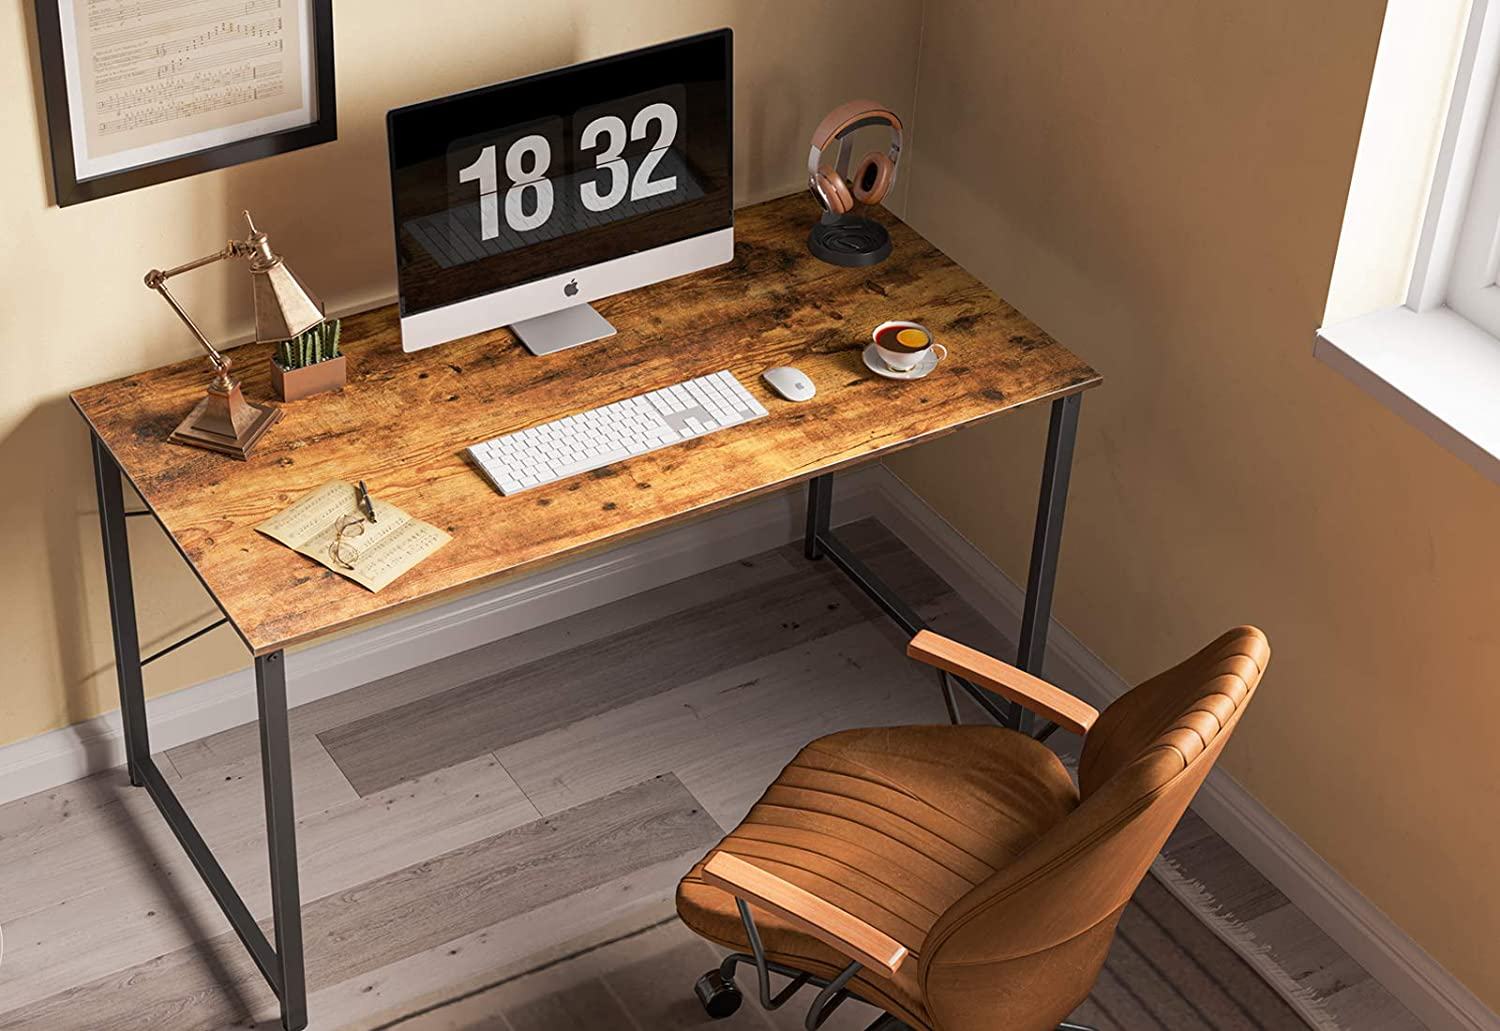 Black Modern Simple Style Cubicubi Computer Desk 40 Home Office Laptop Desk Study Writing Table